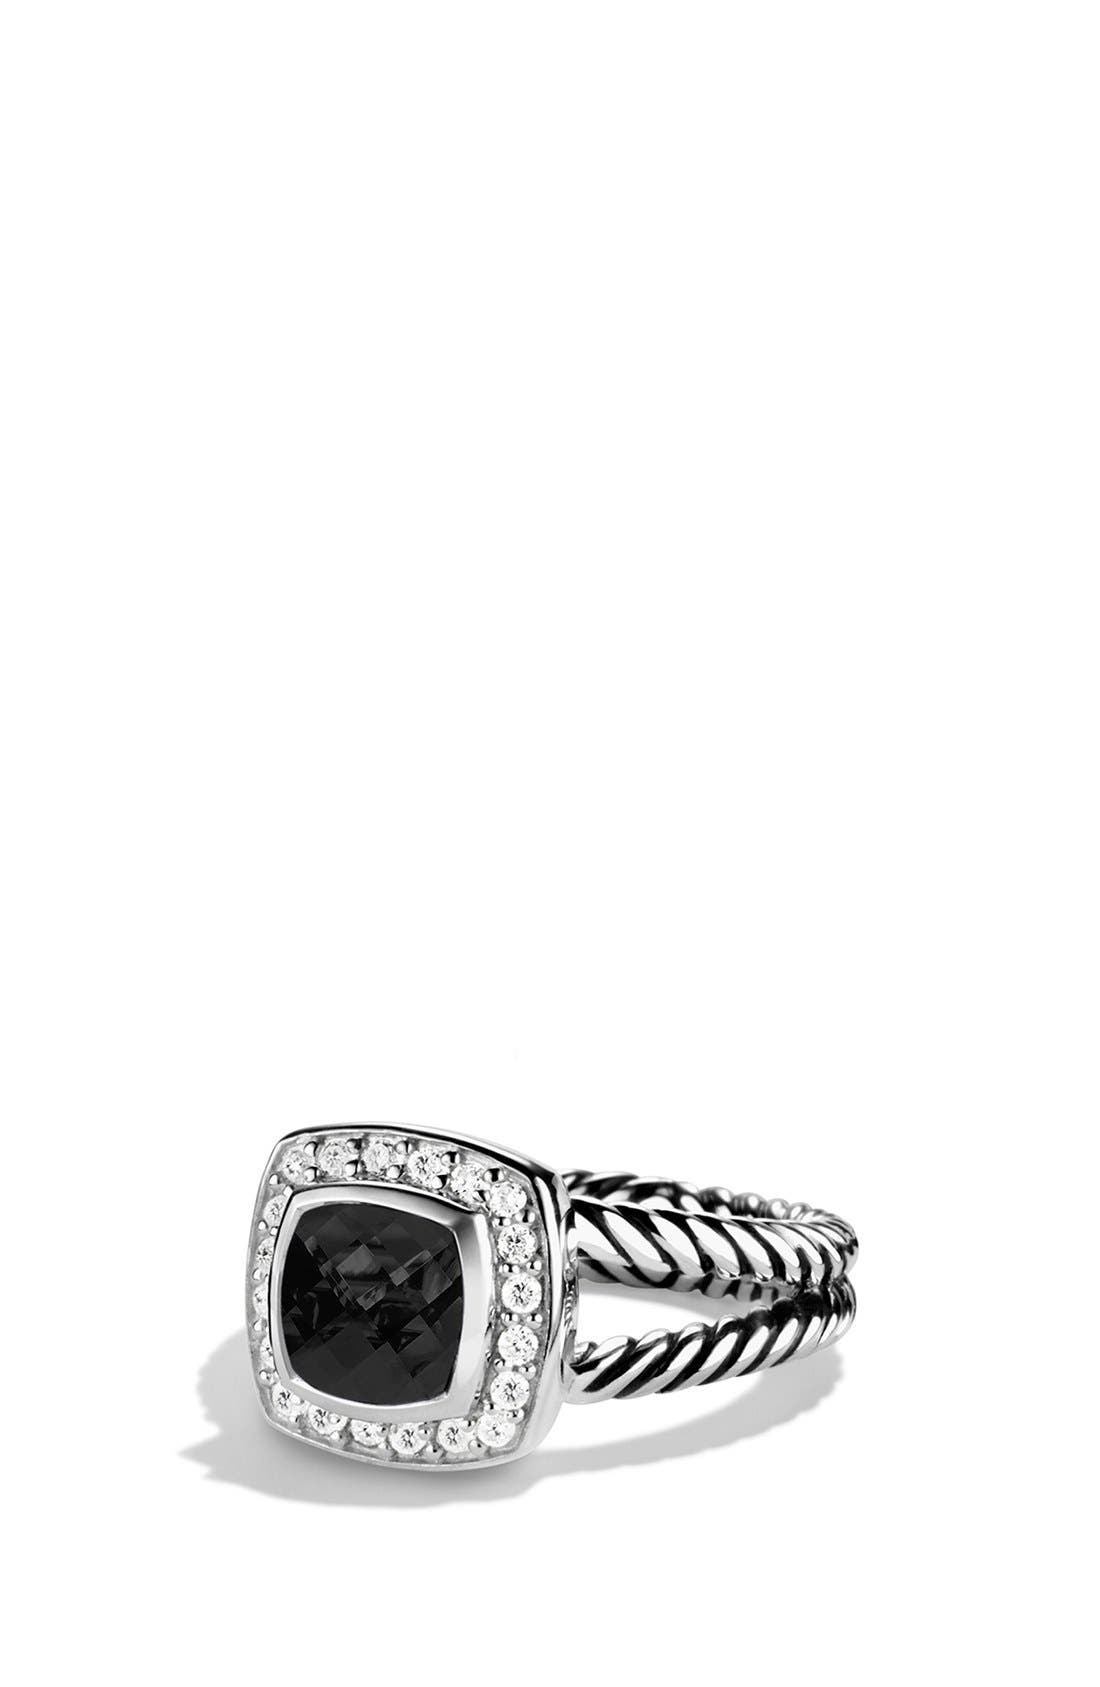 Main Image - David Yurman 'Albion' Petite Ring with Semiprecious Stone & Diamonds